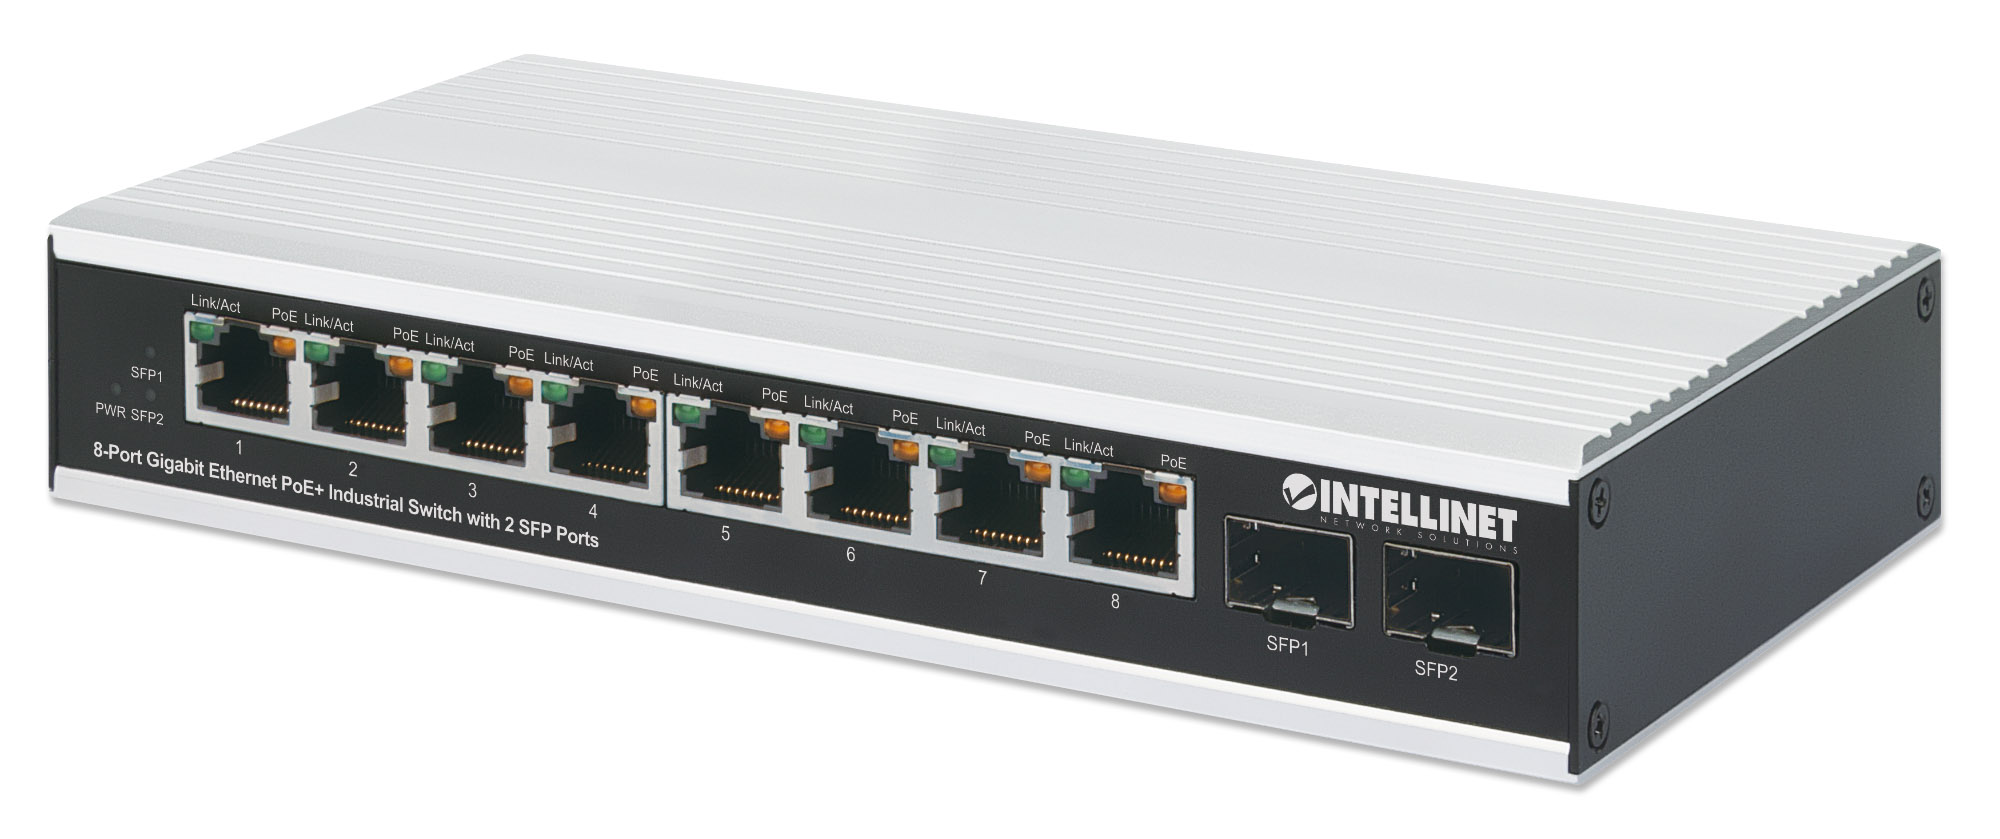 8-Port Gigabit Ethernet PoE+ Industrial Switch with 2 SFP Ports